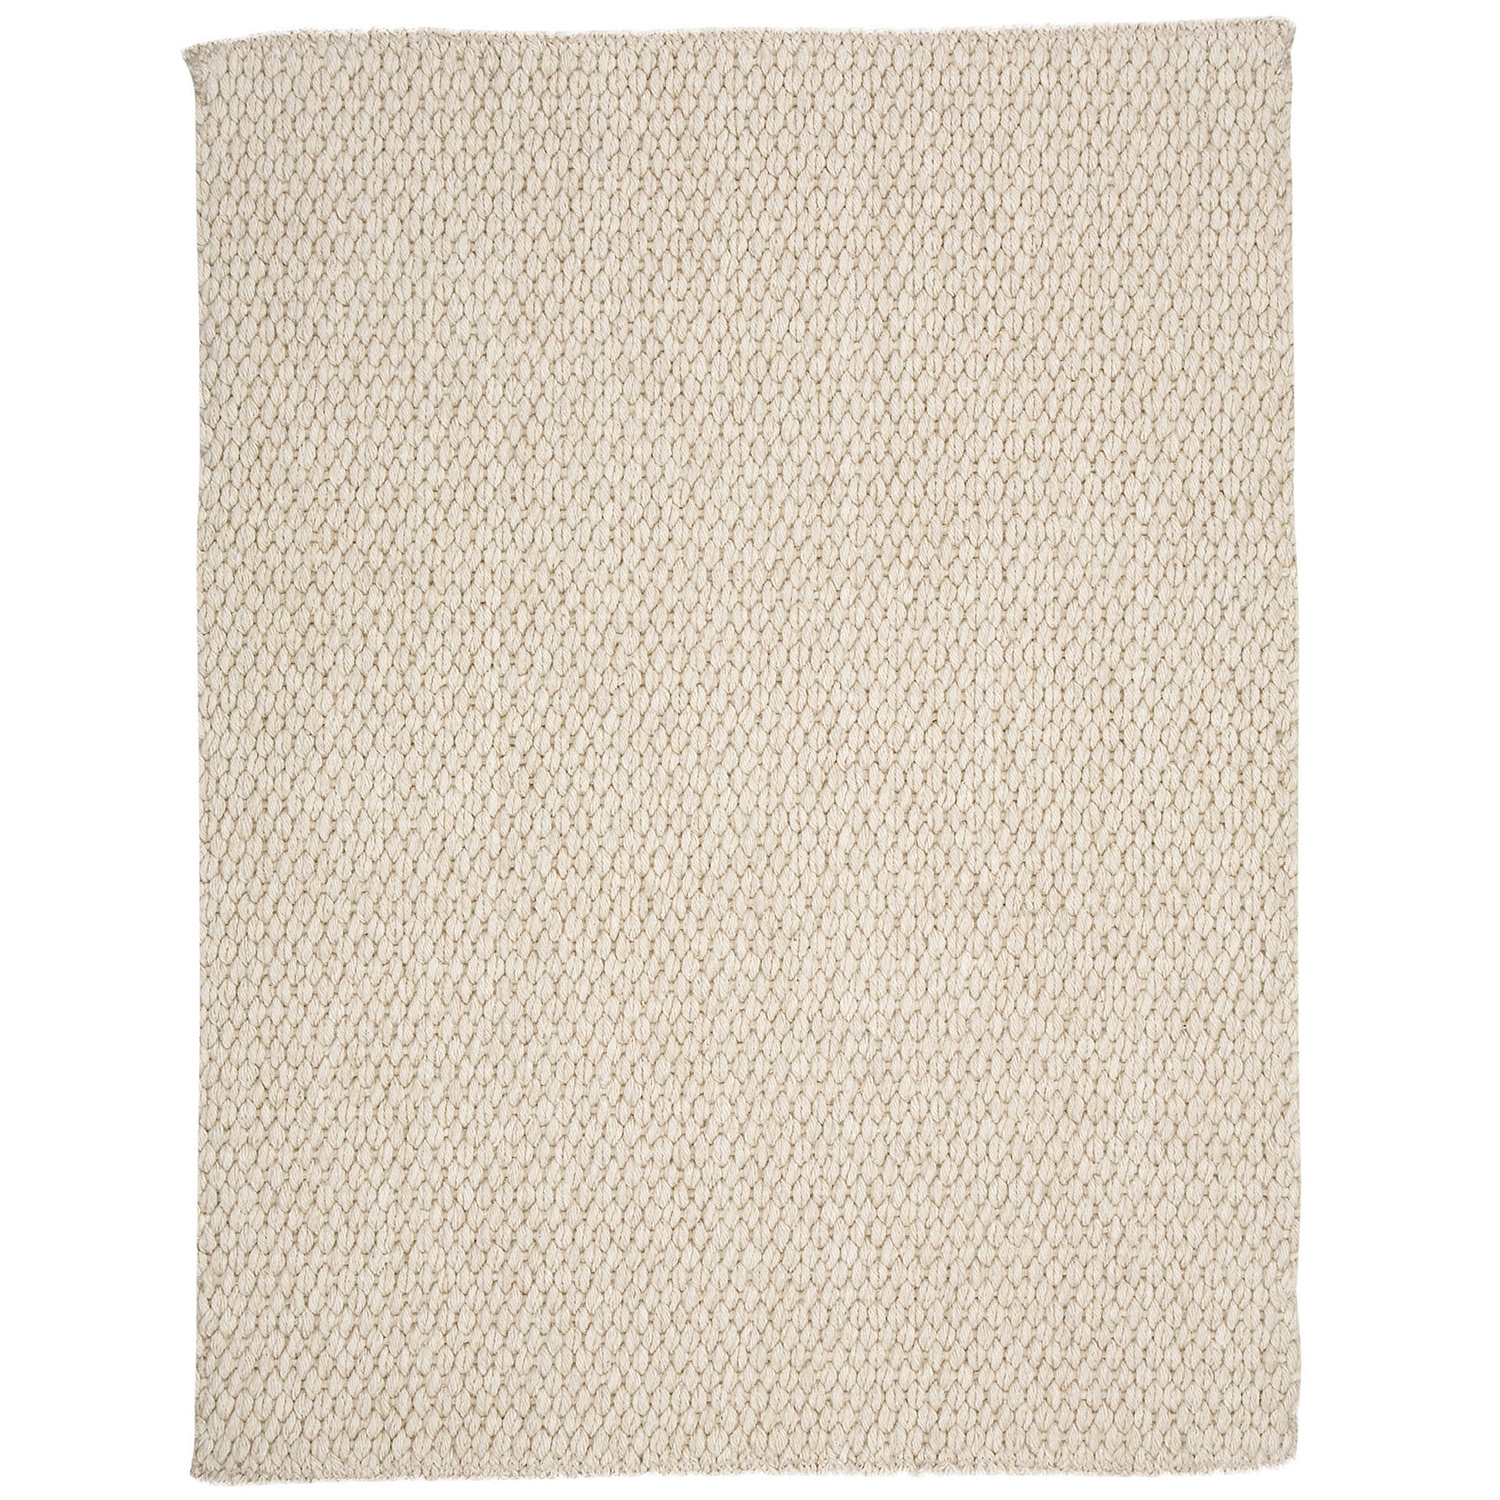 Capel Rugs Capel Area Rugs Capel Wool Rugs Zinc Door Throughout Cream Rugs (Image 1 of 15)